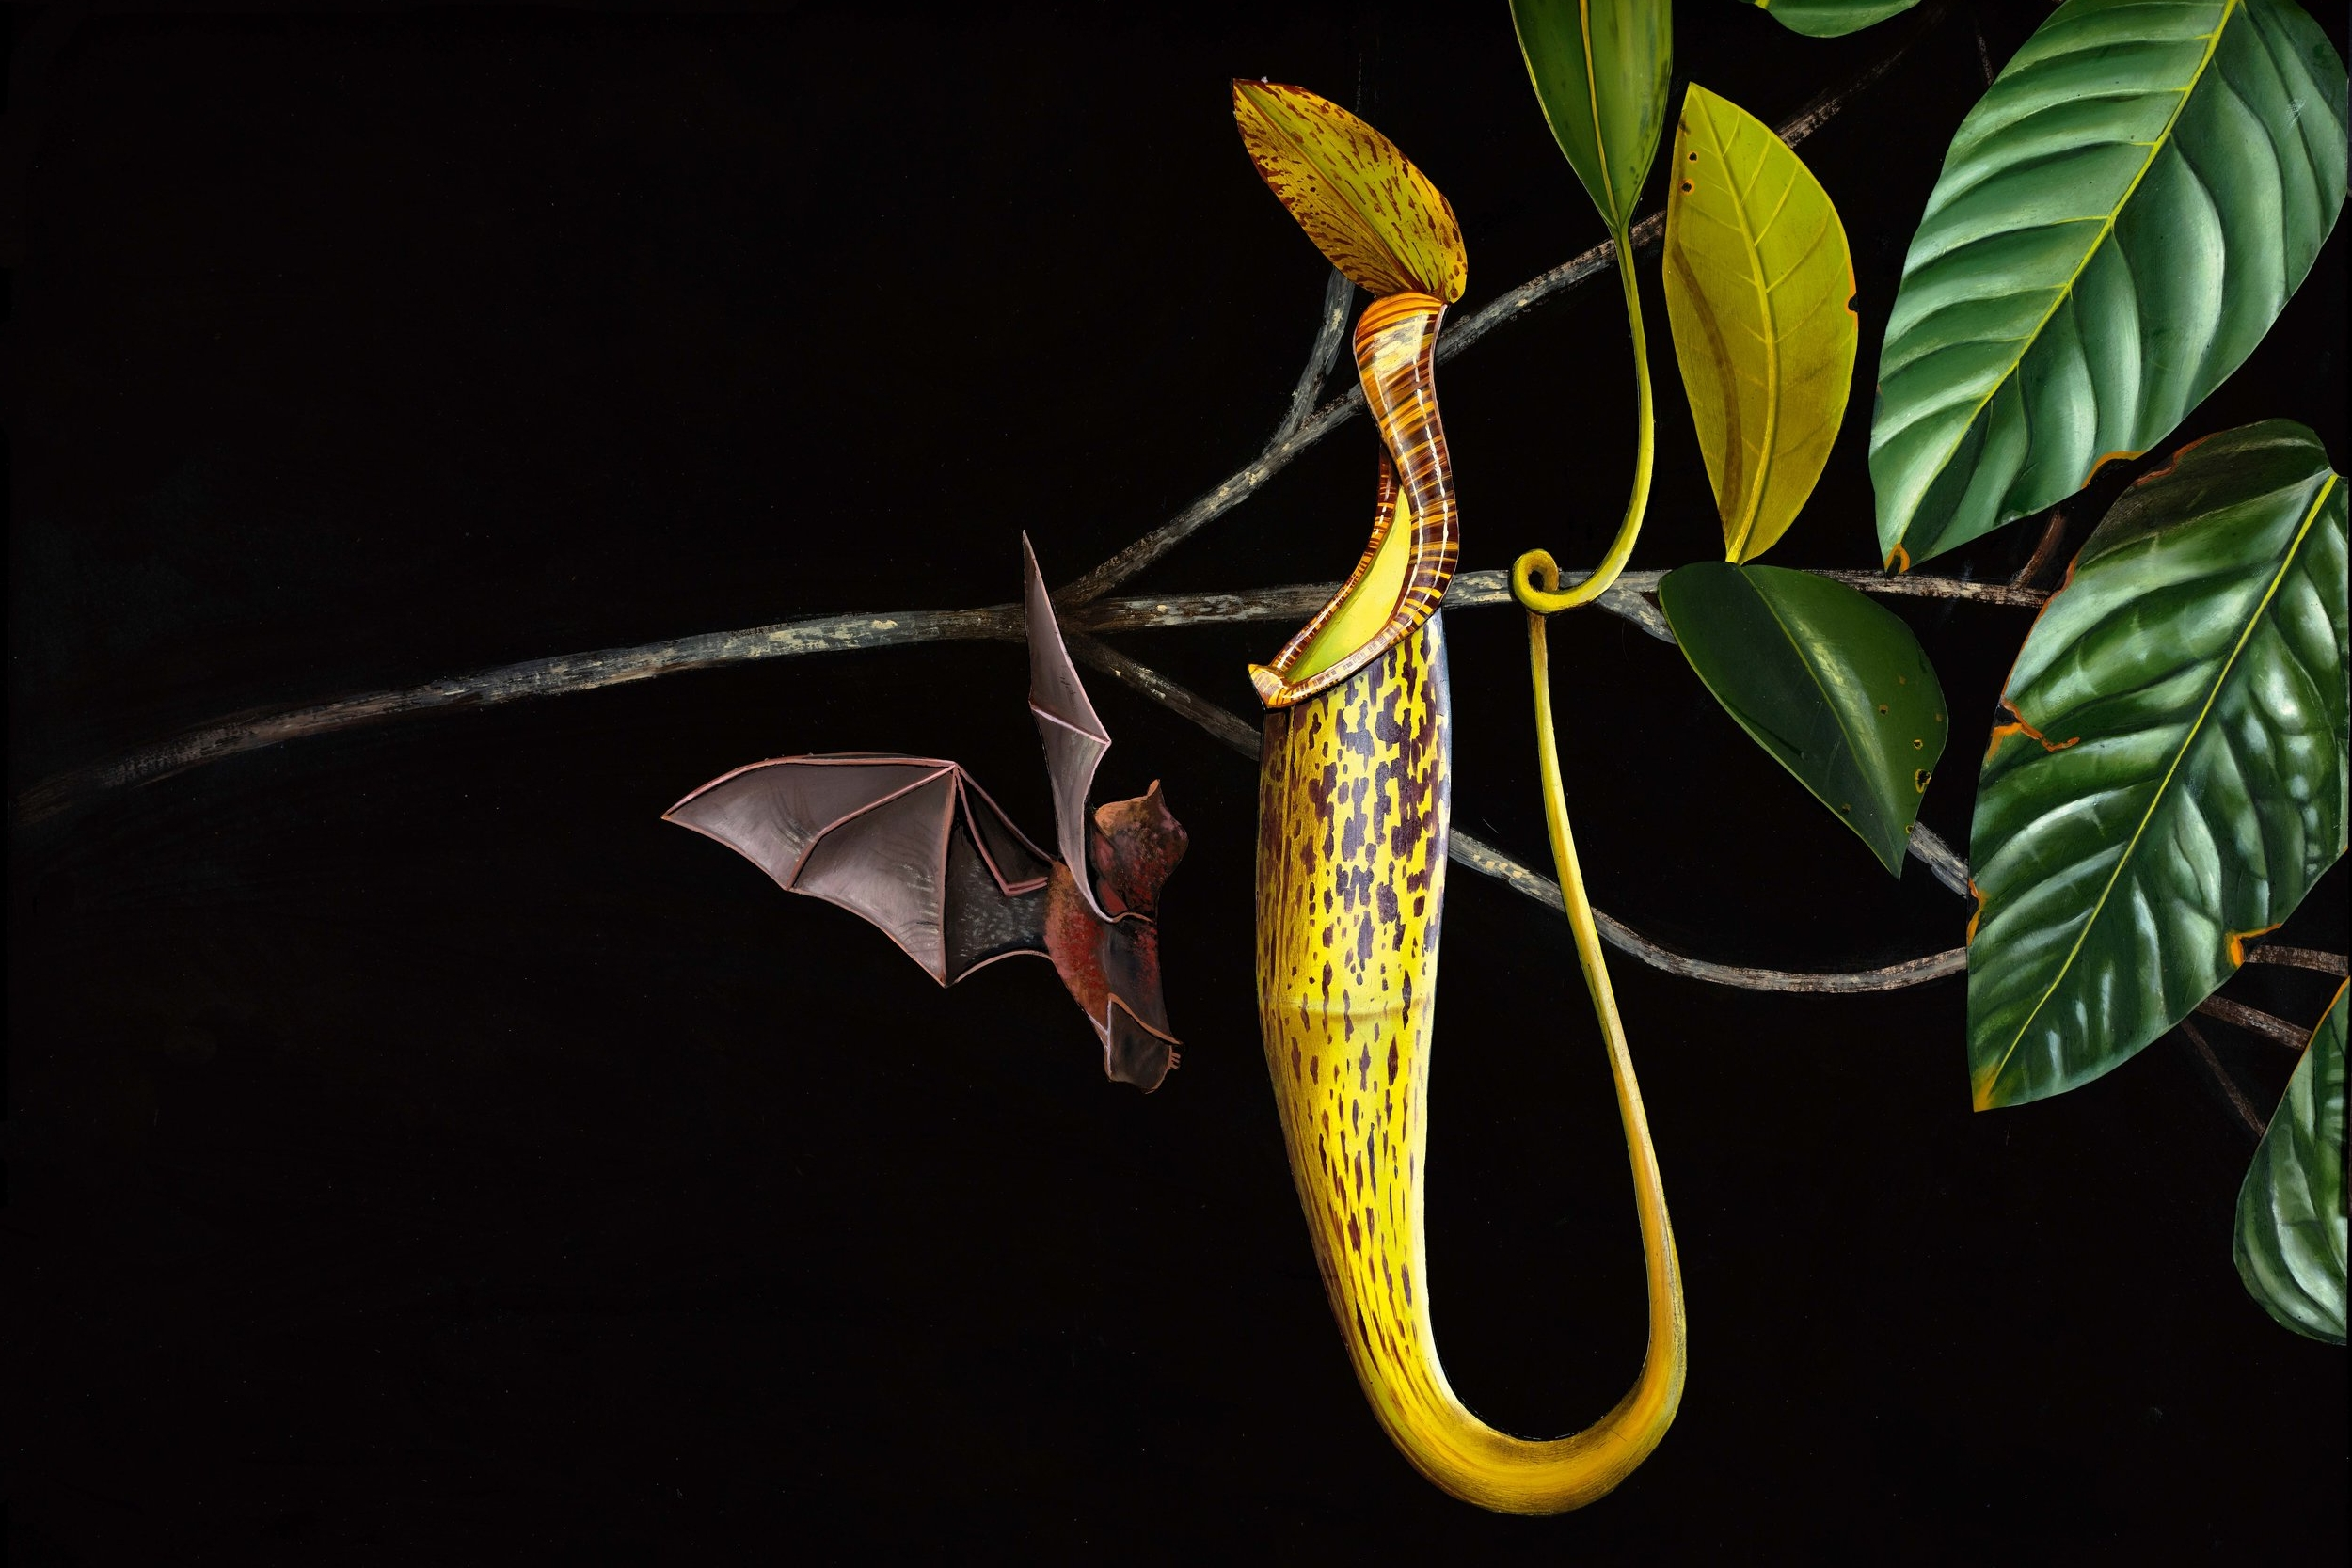 Nepenthes hemsleyana : home to bats. Painting by Chris Thorogood from his book  Weird Plants .